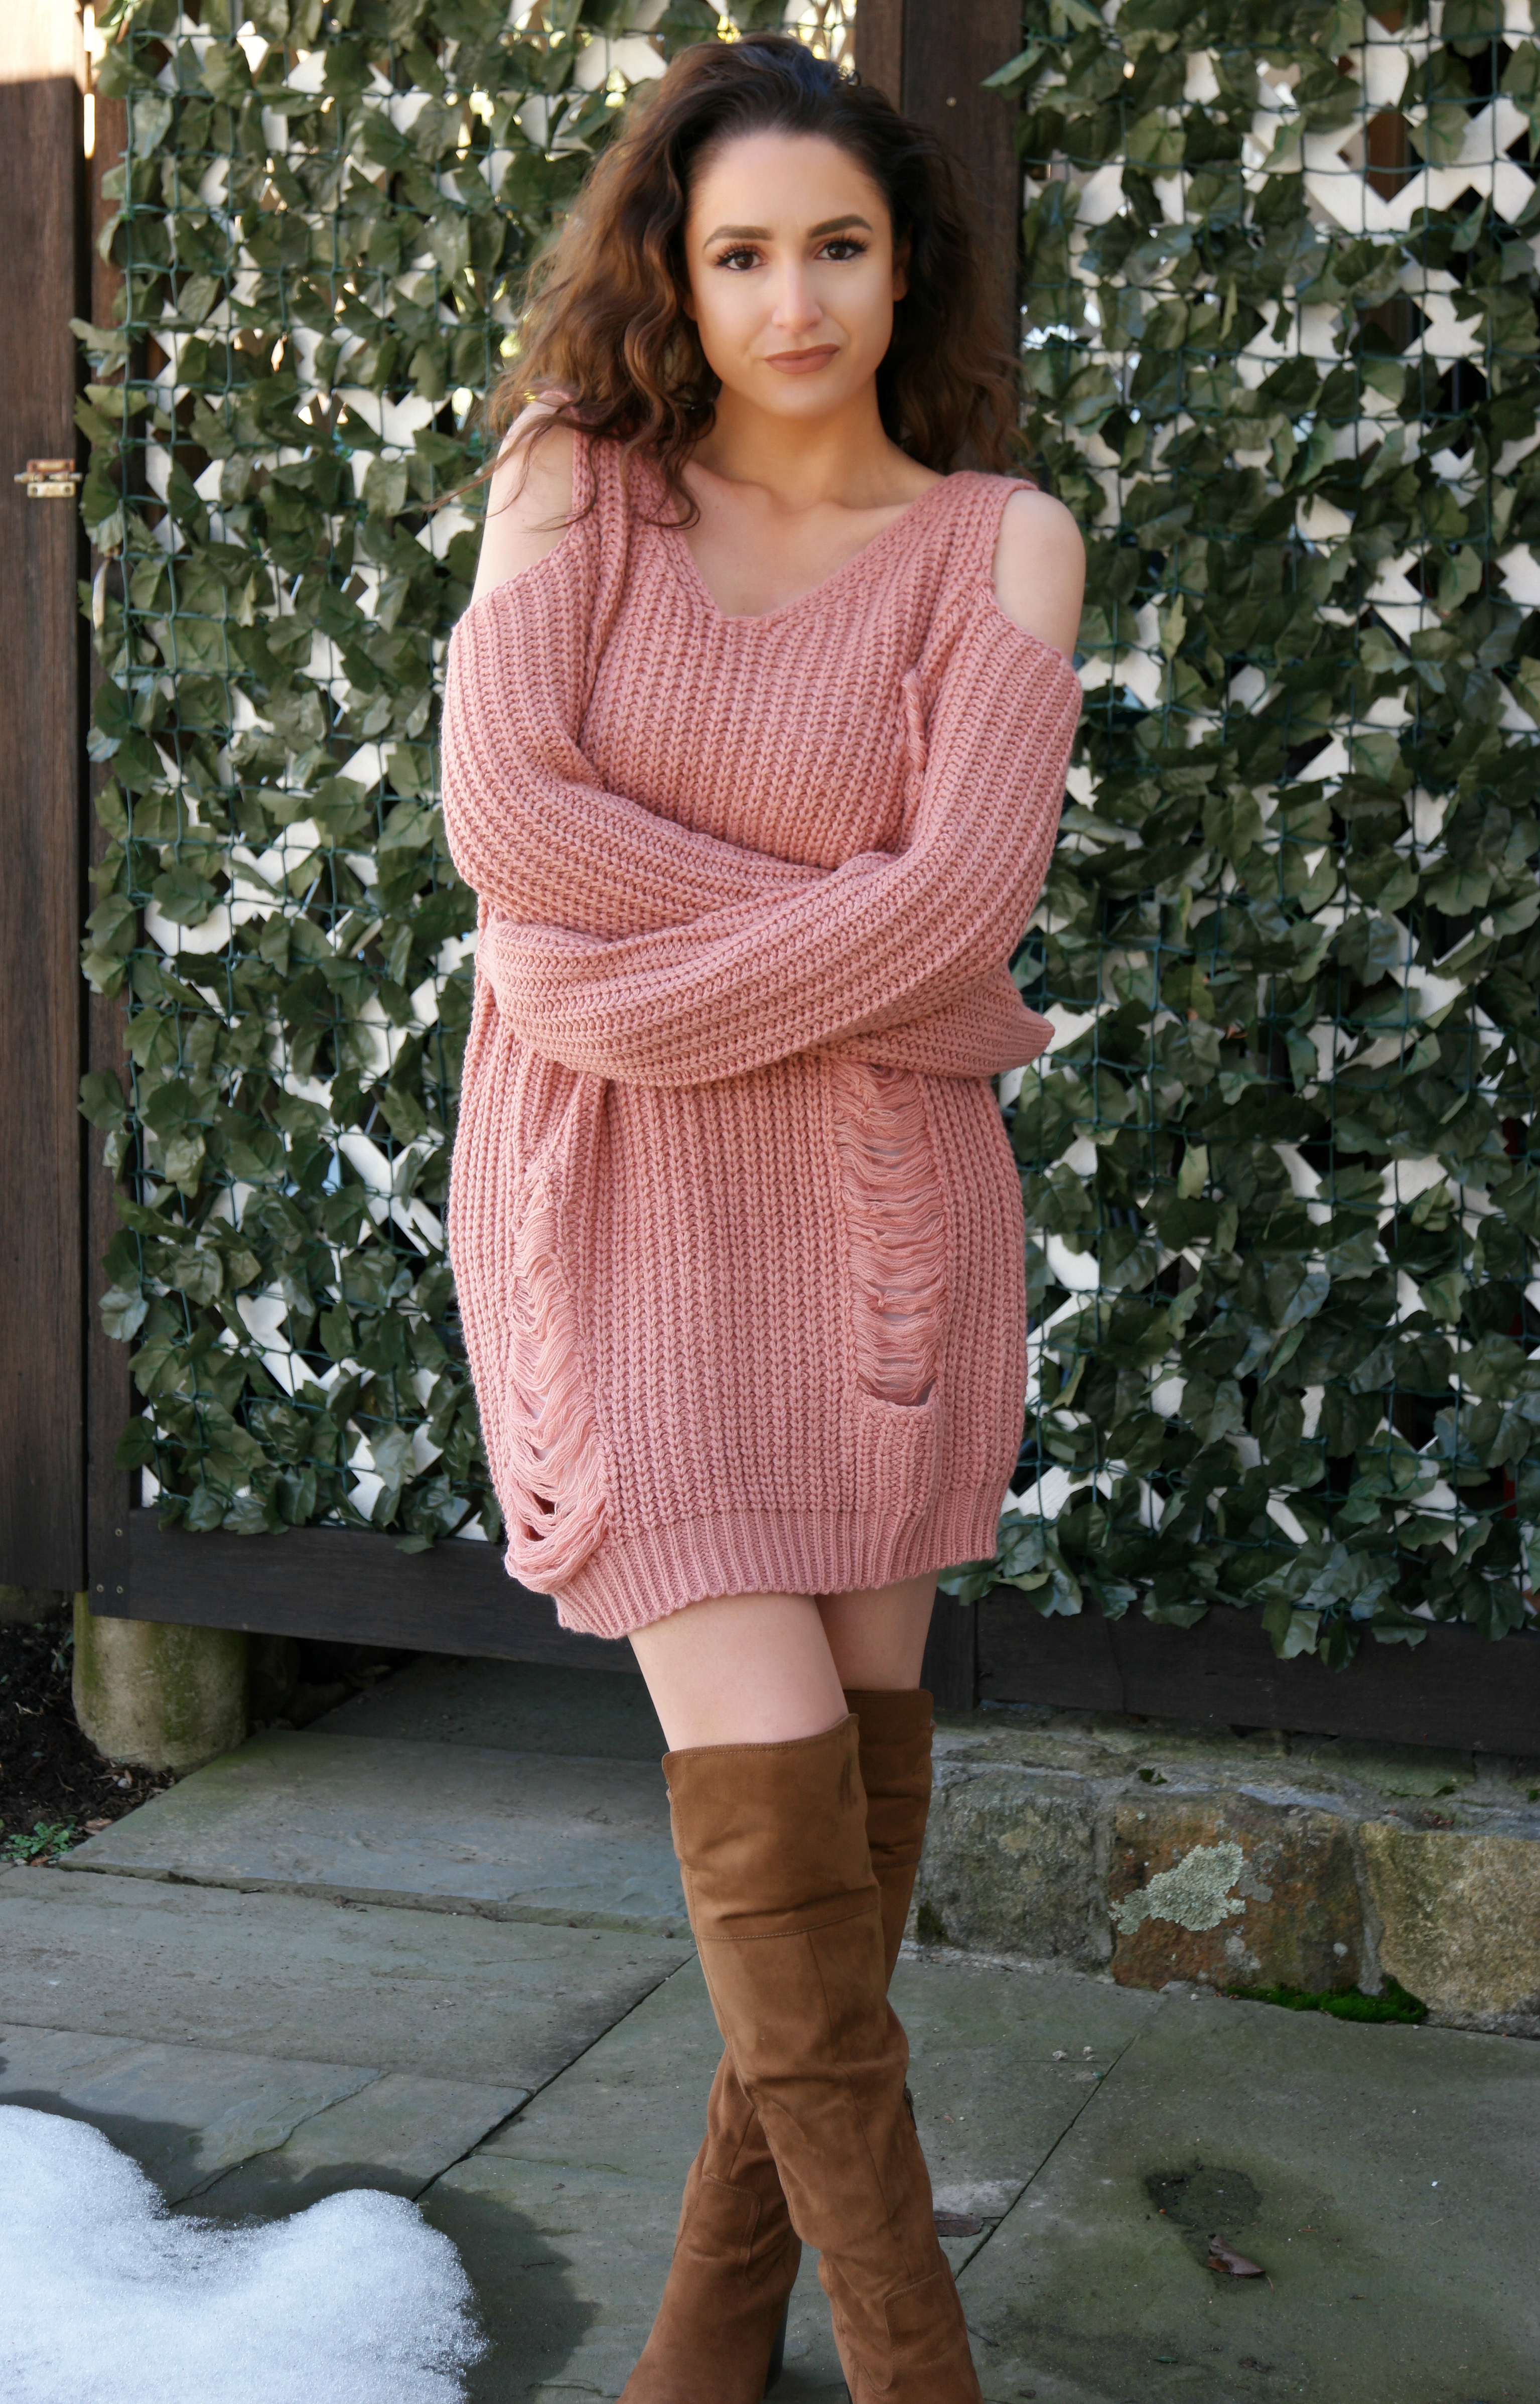 Trying The Trends Oversized Sweater Dresses Amanda Bella